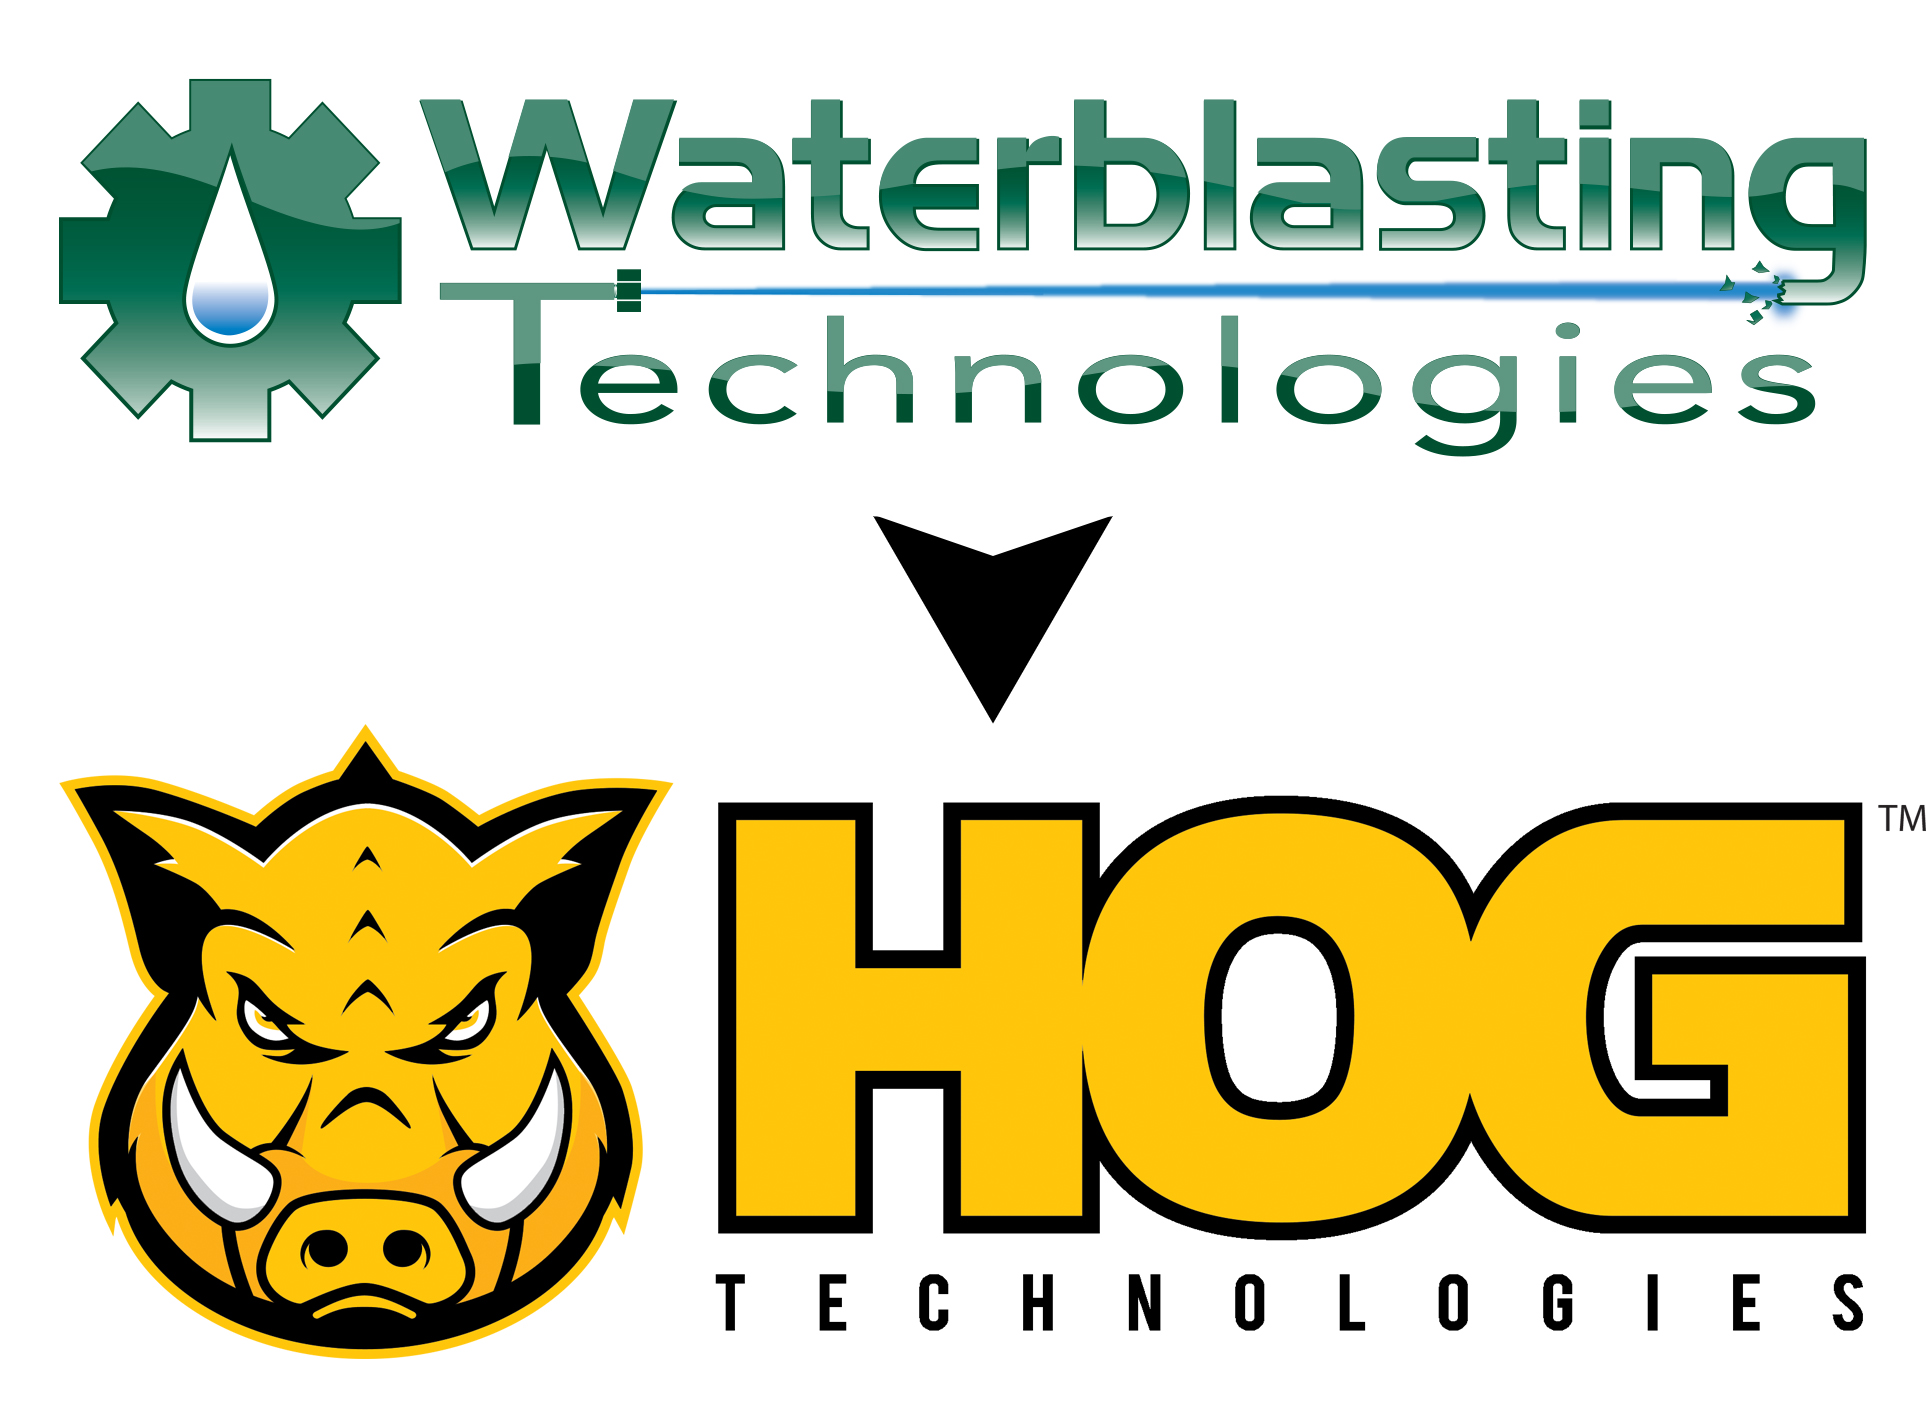 from Waterblasting Technologies to Hog Technologies